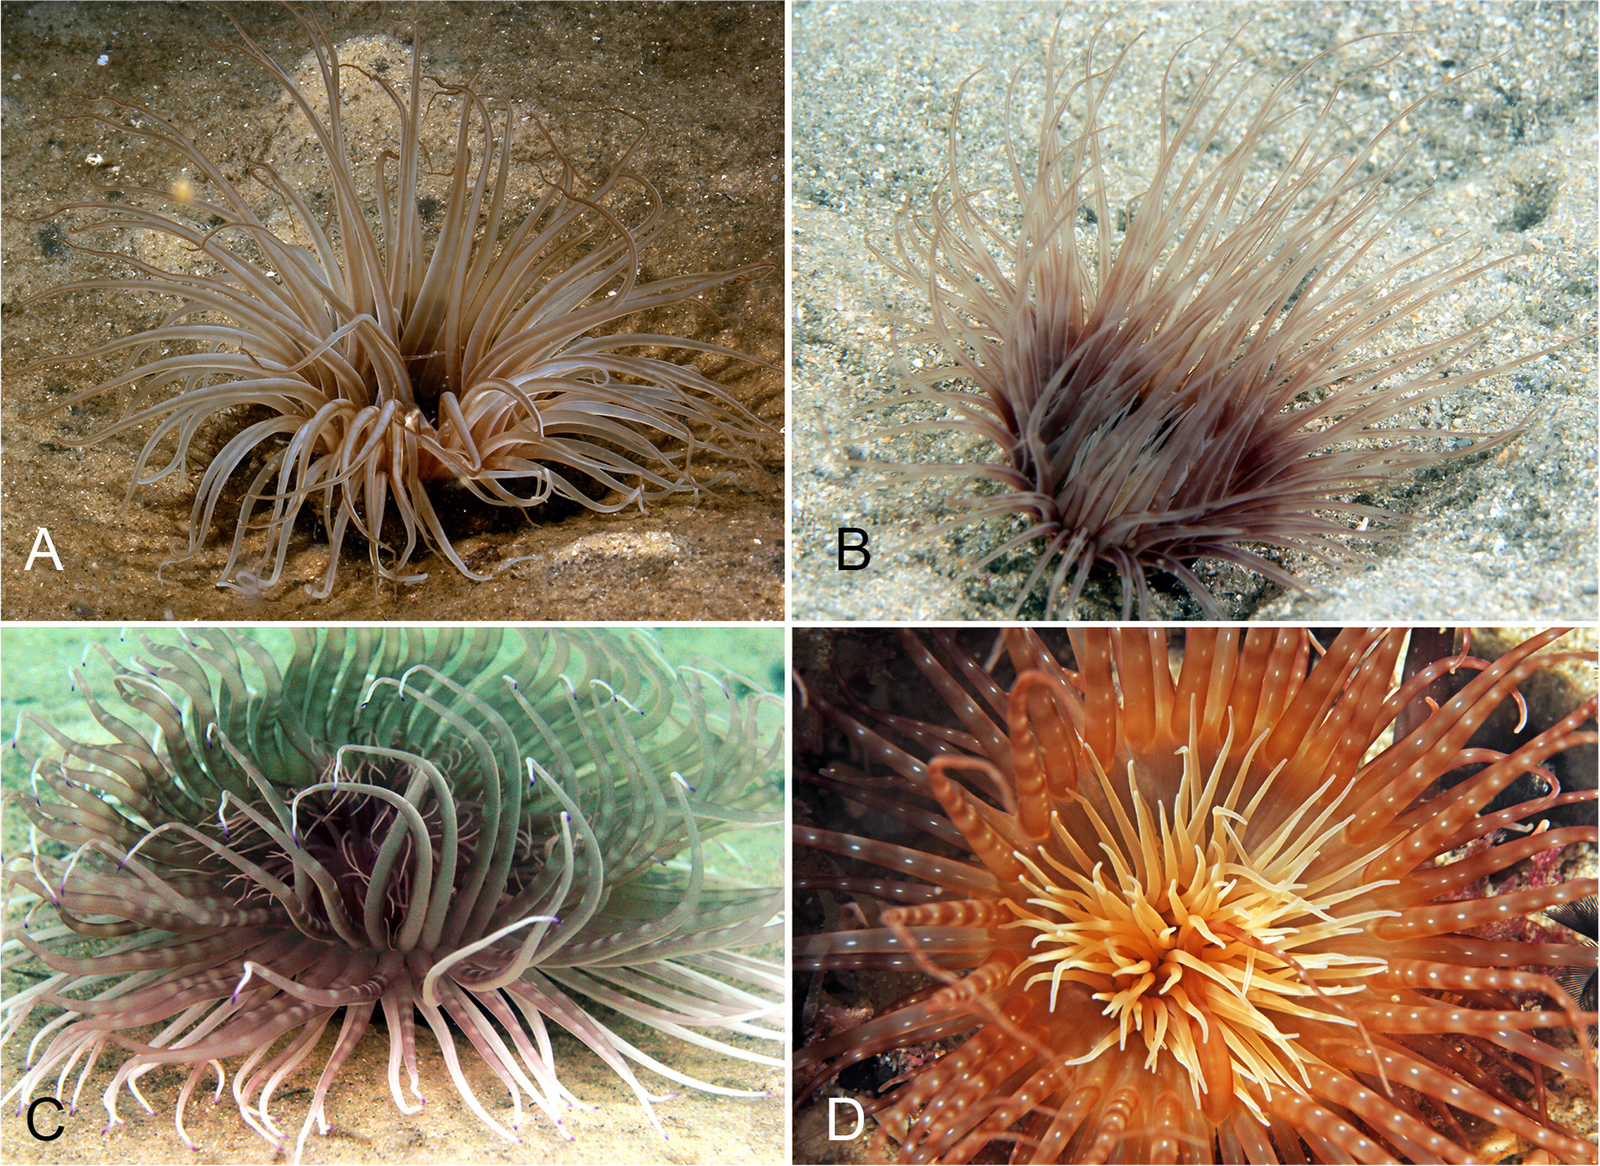 Specimens of the tube anemone Pachycerianthus delwynae in New South Wales, Australia.